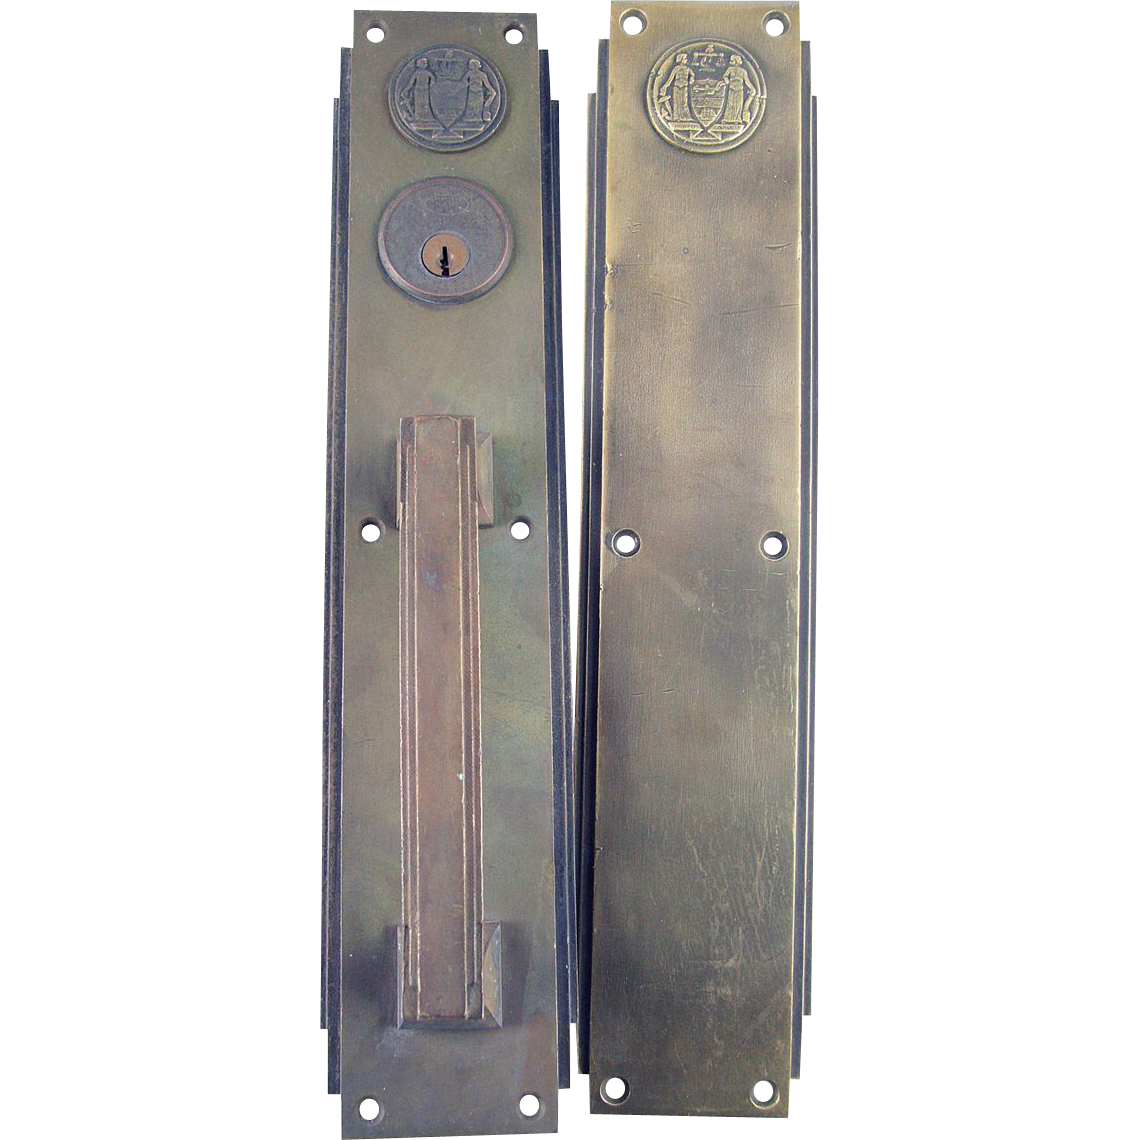 Deco bronze push pull door plates from the Philadelphia Civic Center